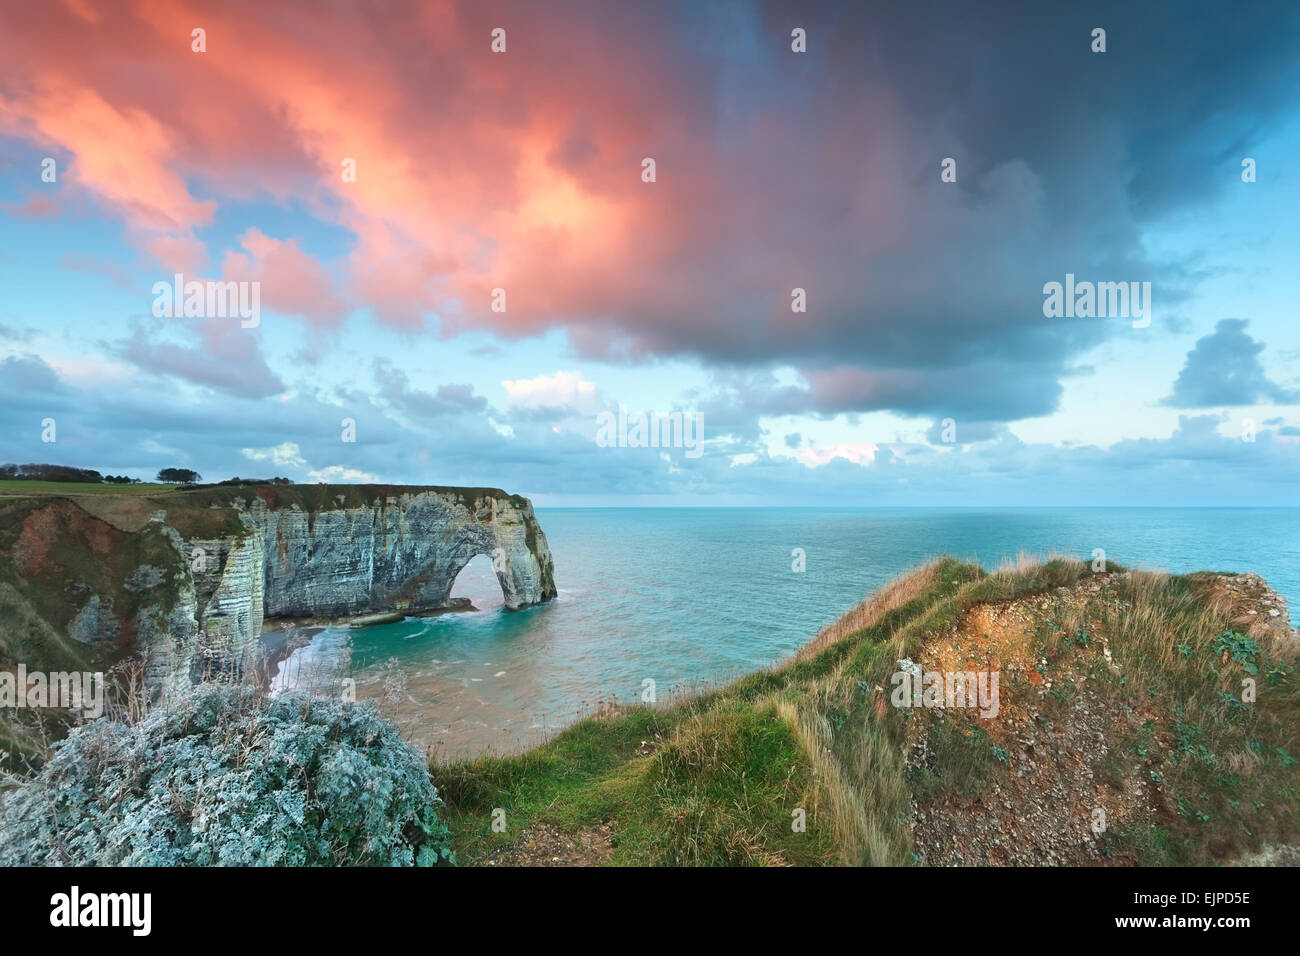 beautiful sunrise on Atlantic ocean coast, Etretat, France - Stock Image